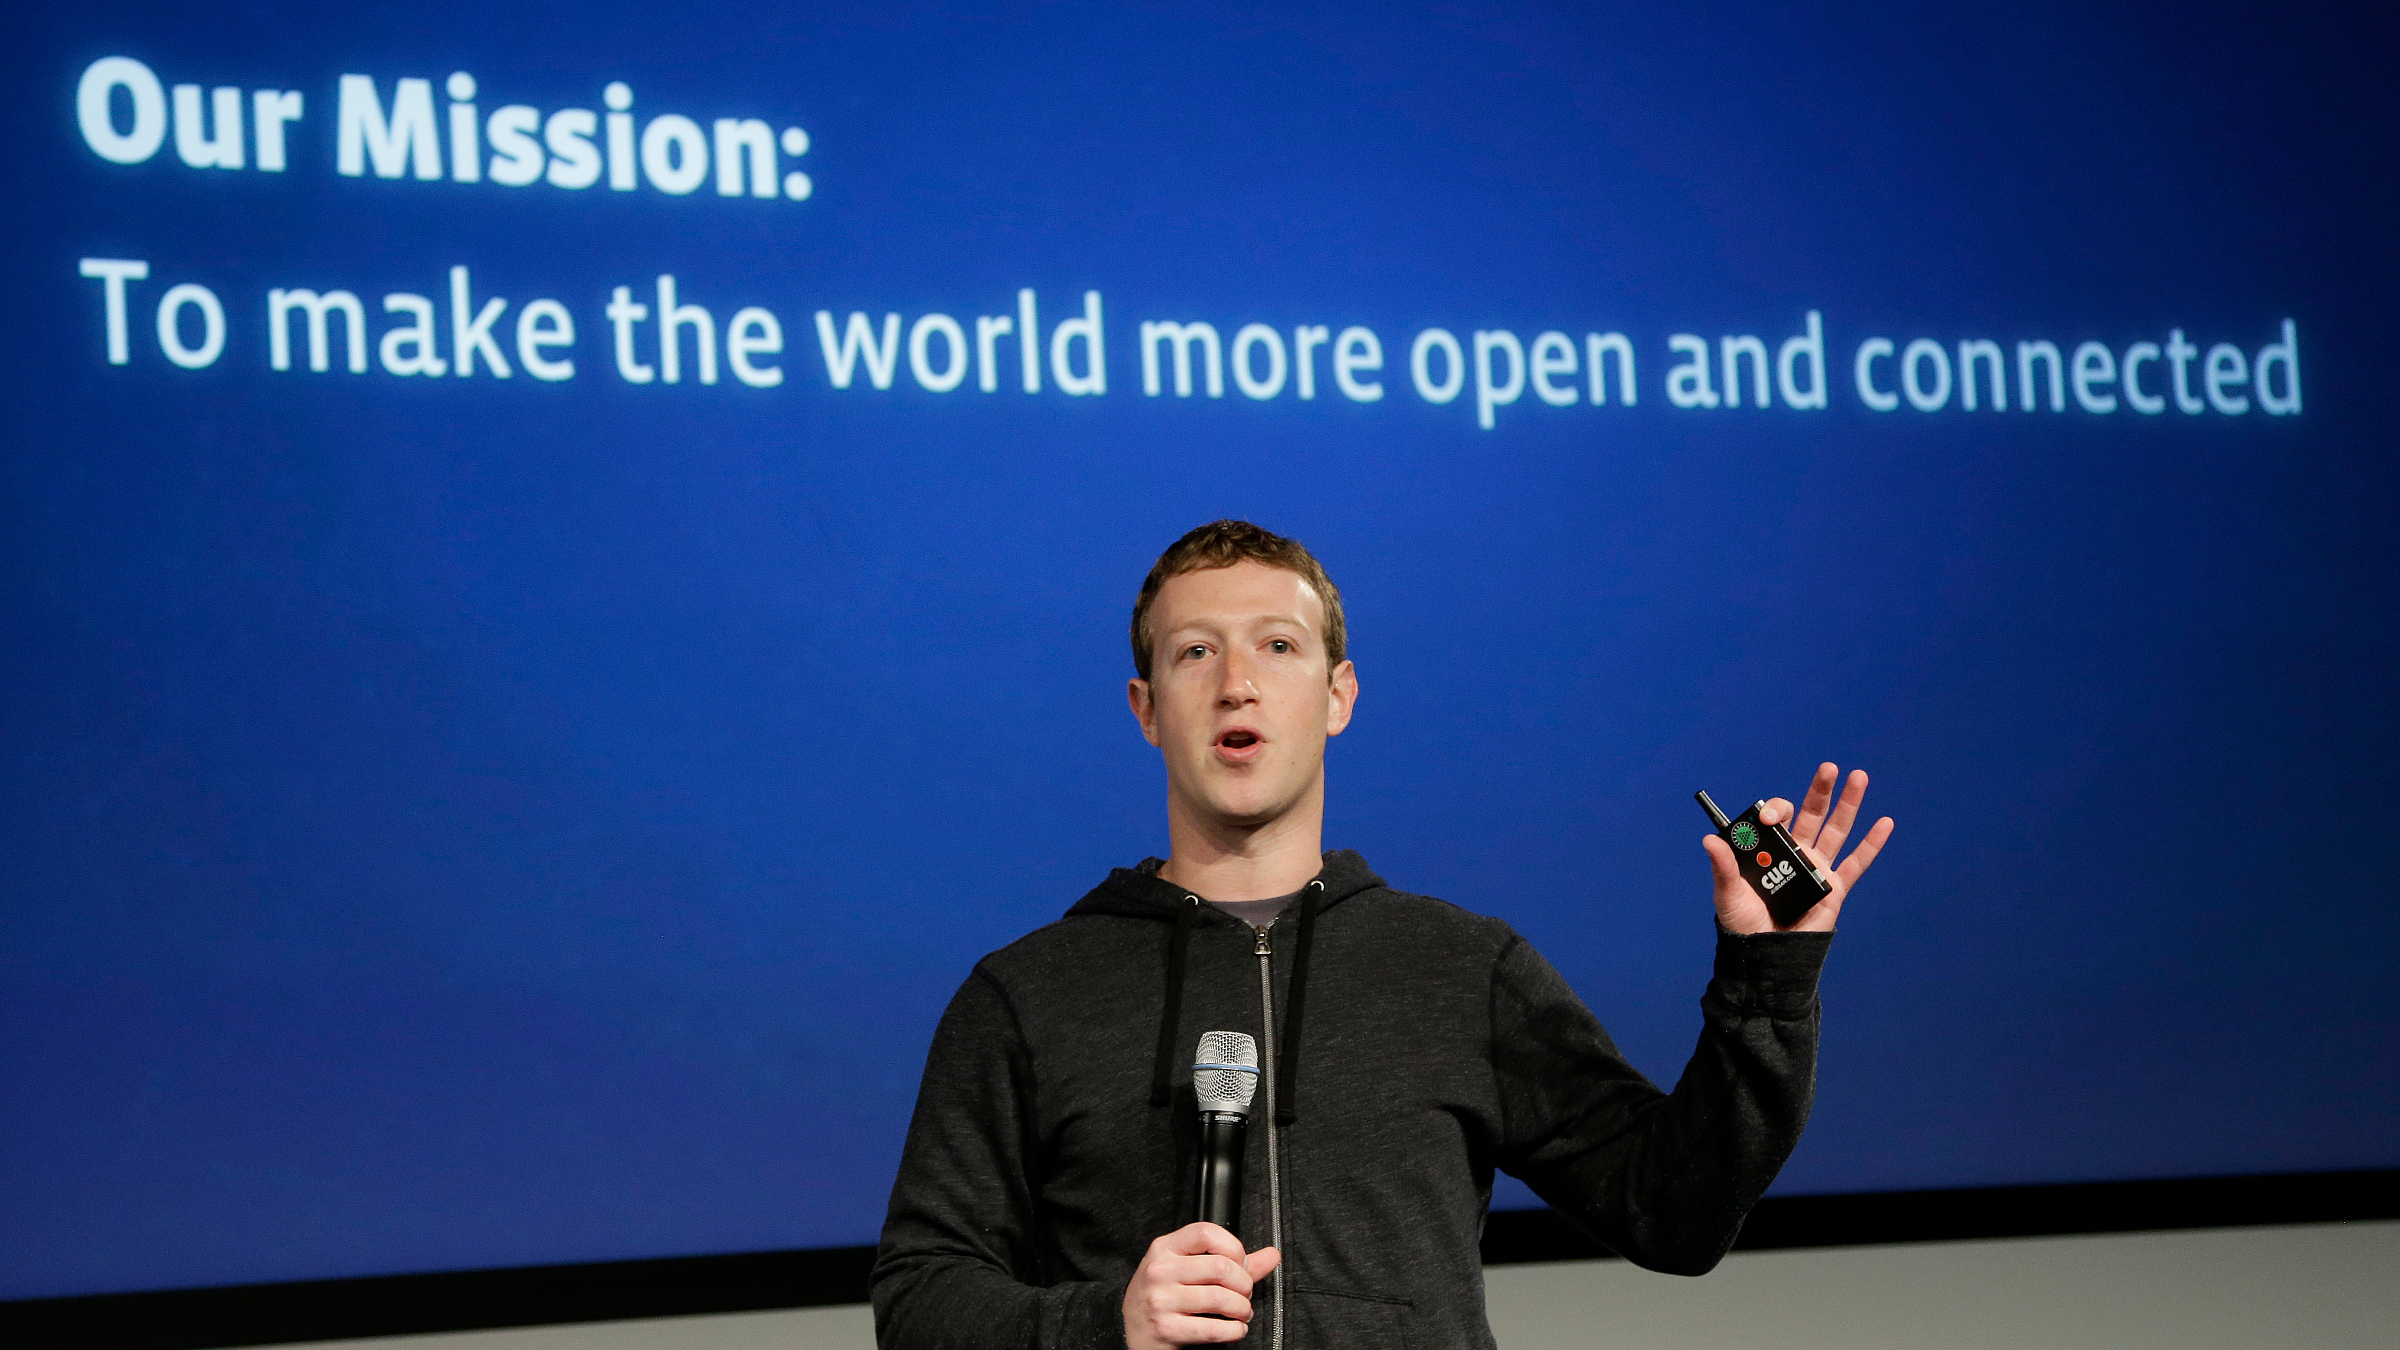 Facebook CEO Mark Zuckerberg speaks at Facebook headquarters in Menlo Park, Calif., Thursday, March 7, 2013. Zuckerberg on Thursday unveiled a new look for the social network's News Feed, the place where its 1 billion users congregate to see what's happening with their friends, family and favorite businesses